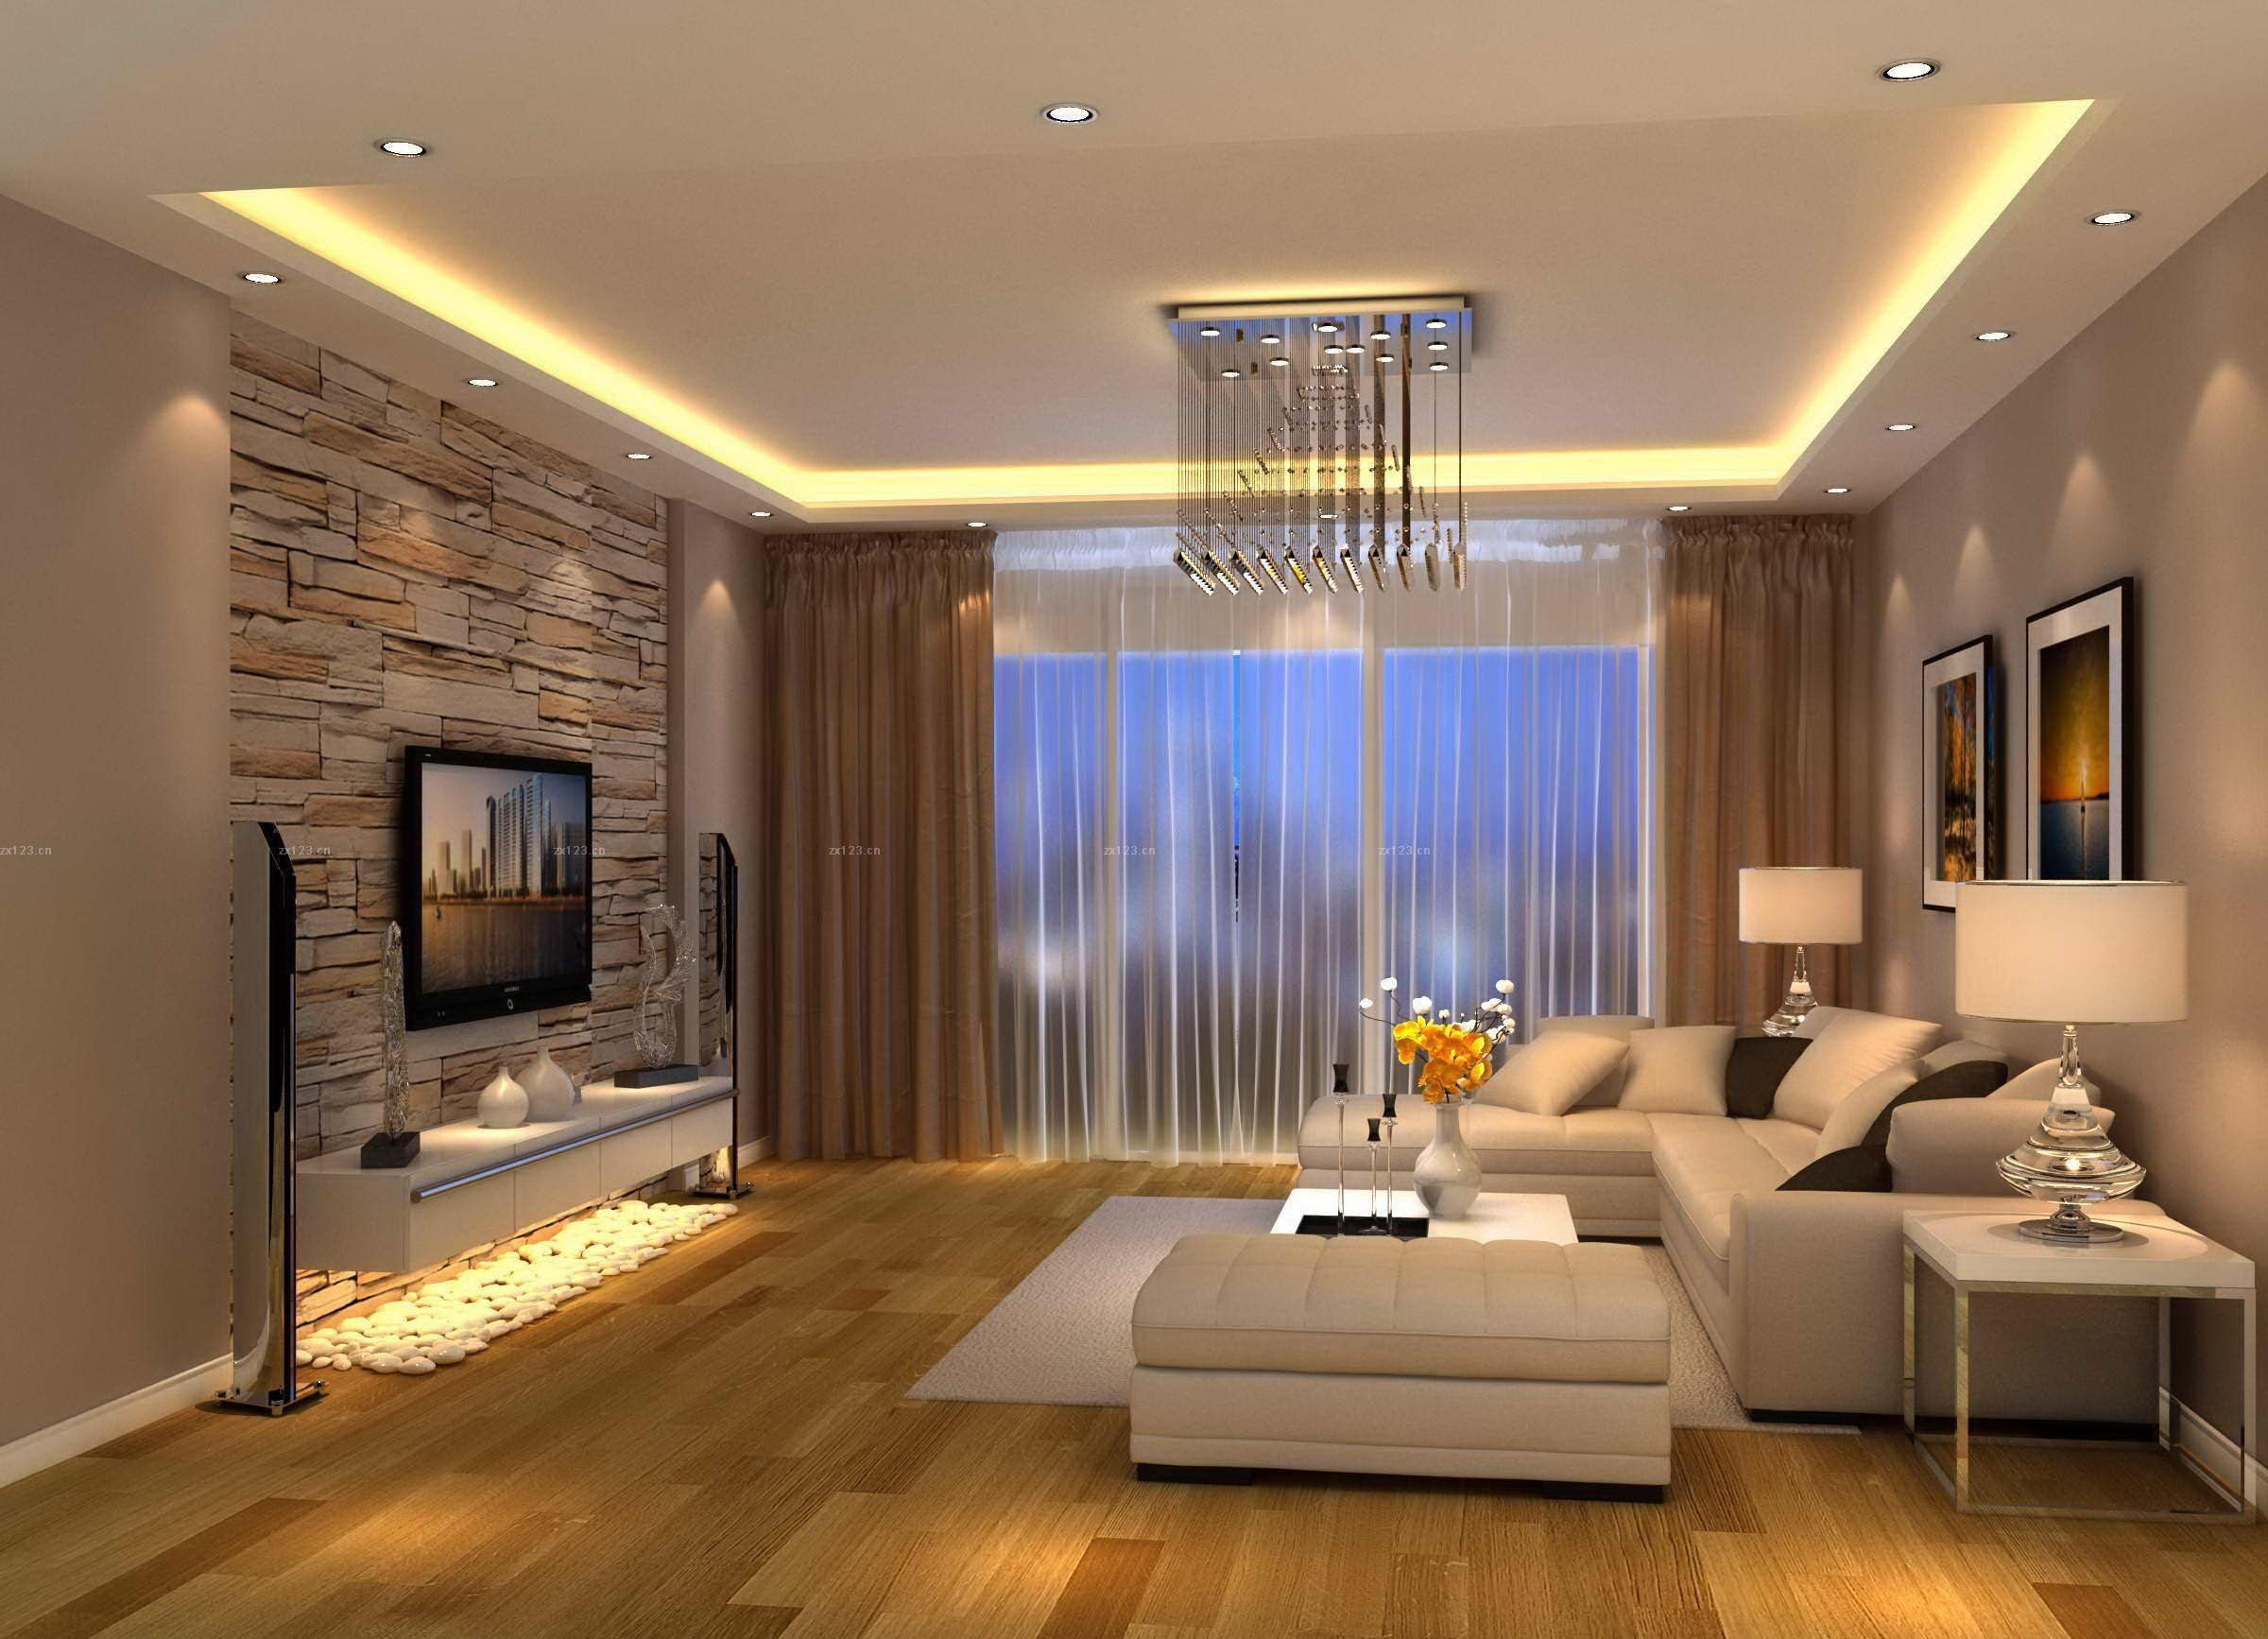 Interior Design Idee Arredamento modern living room brown design … | idee arredamento